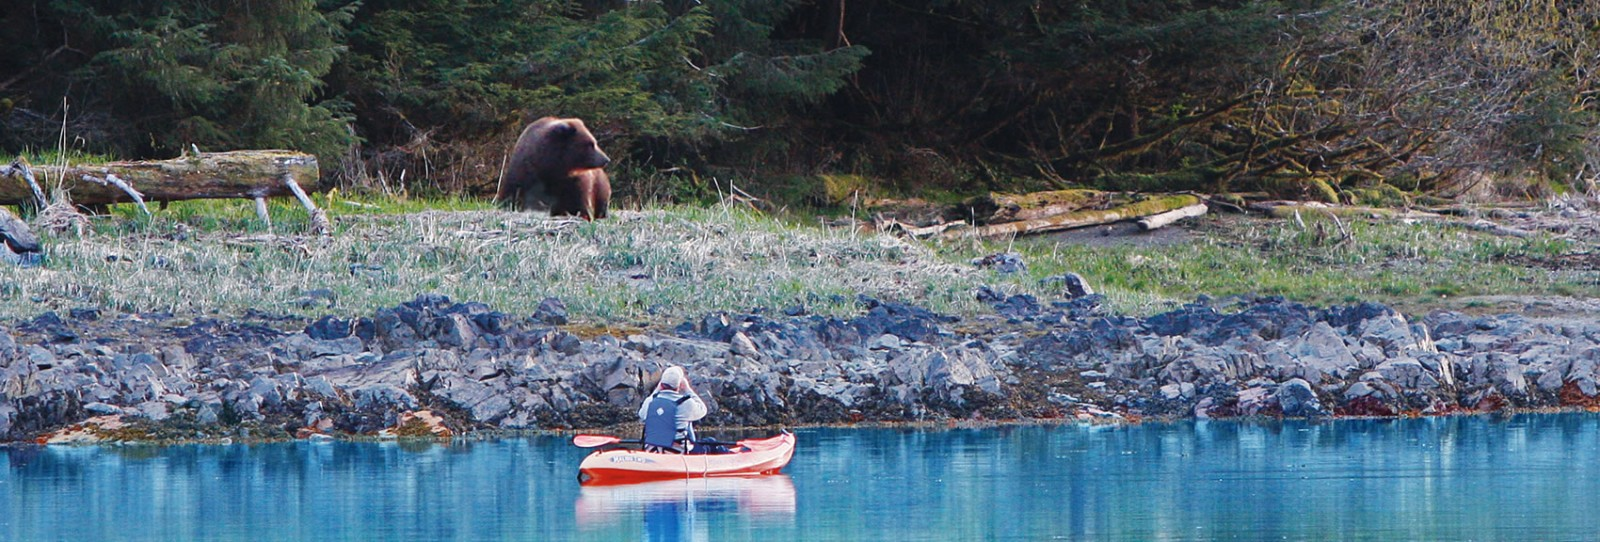 sailing the inside passage - brown bear and kayak